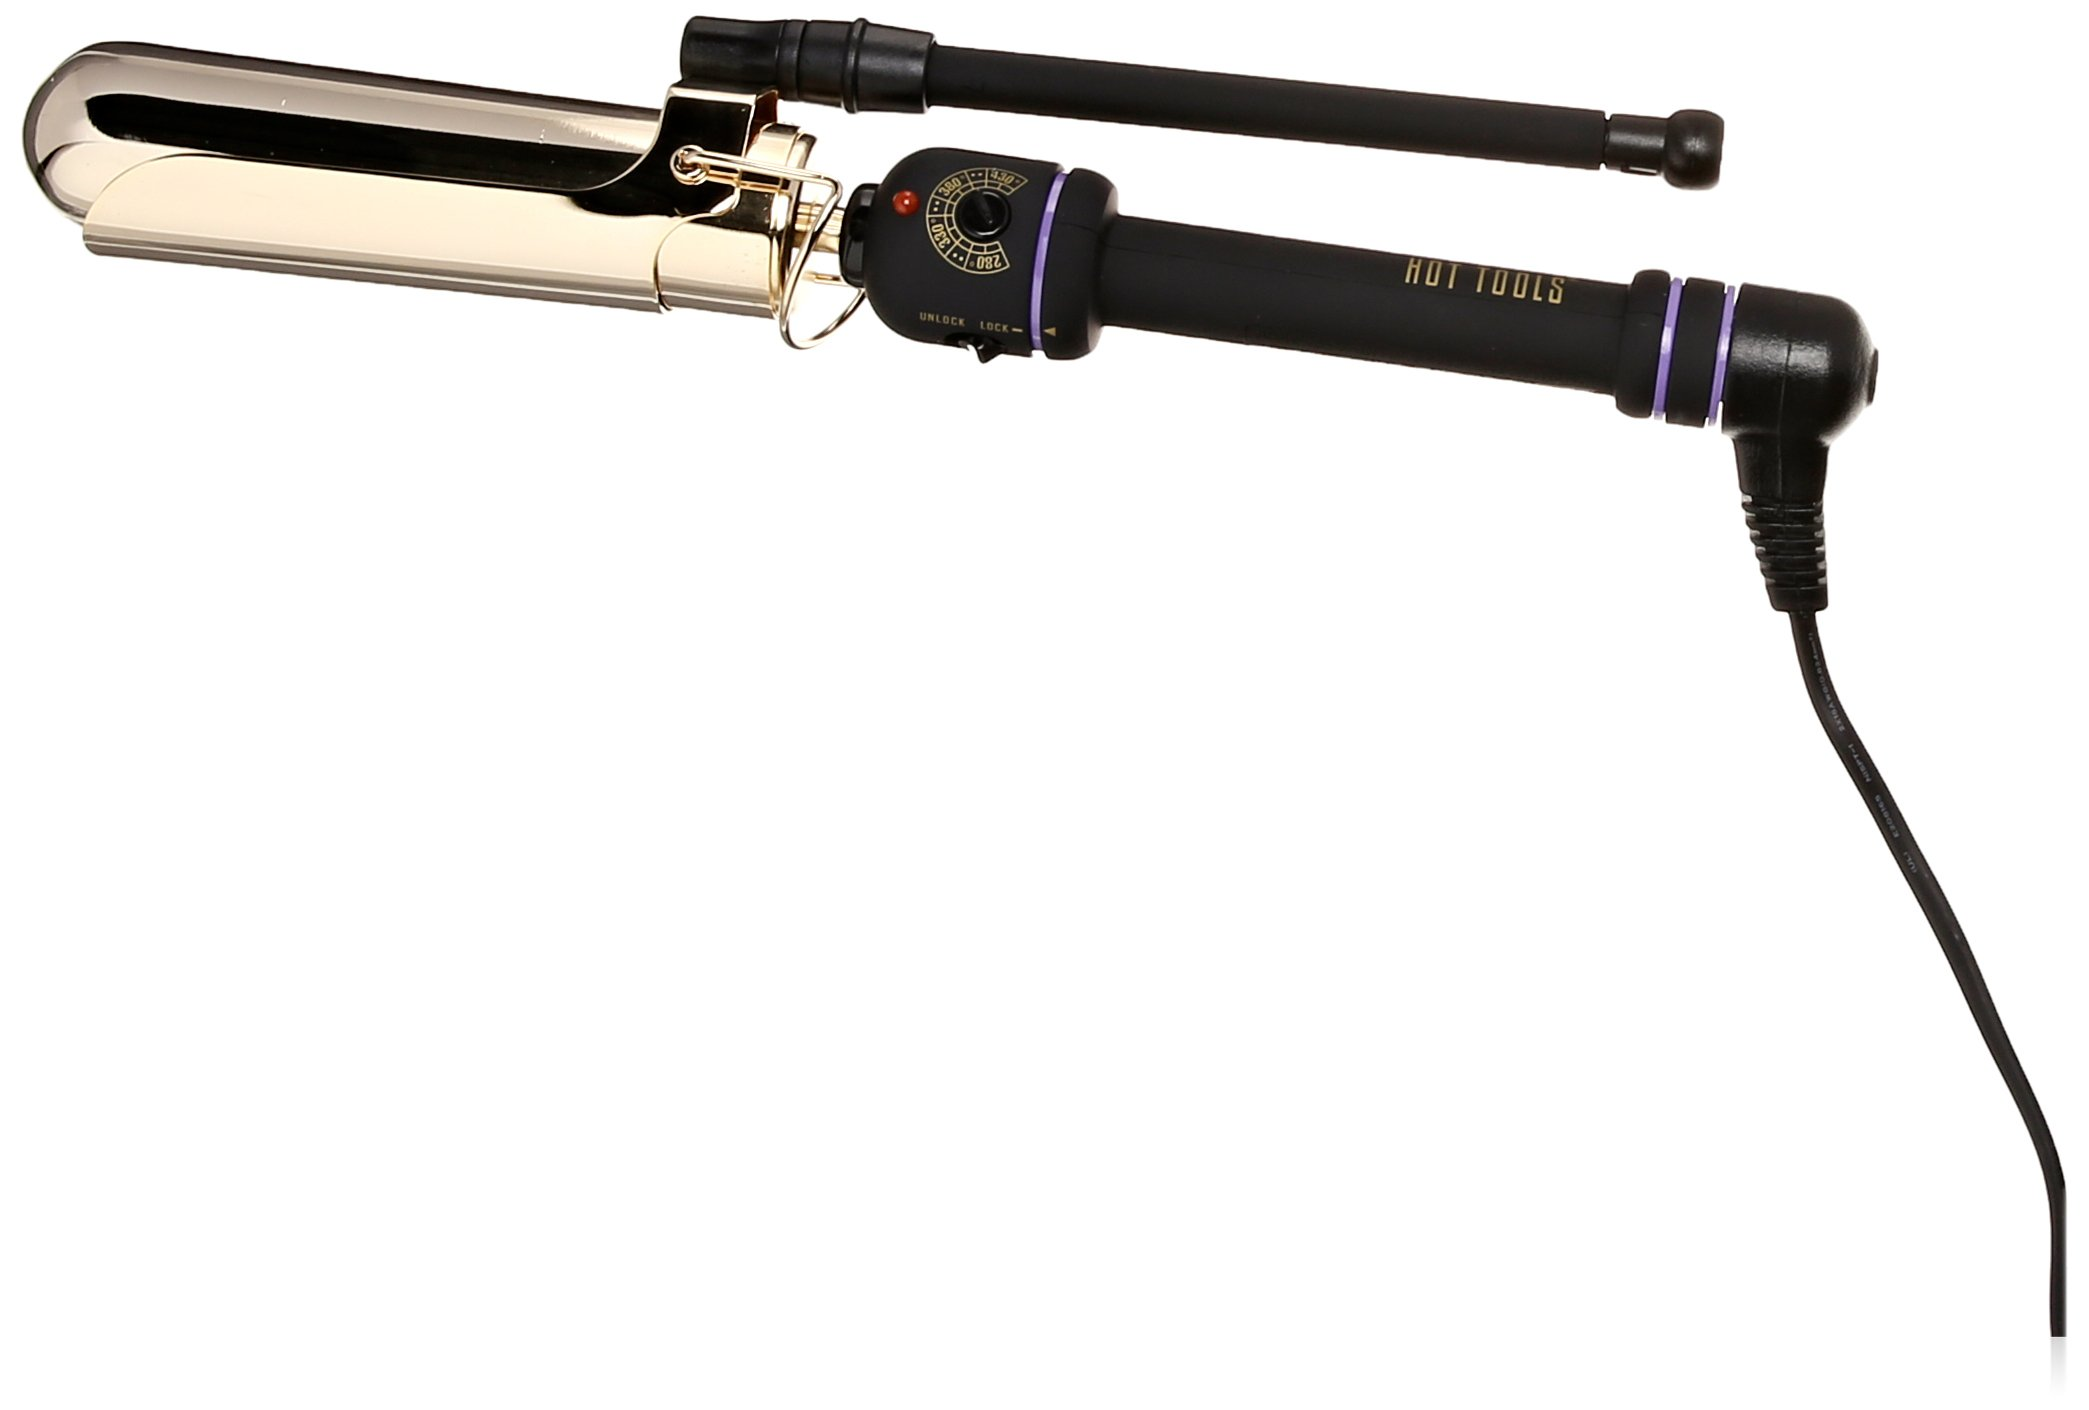 HOT TOOLS 1182 Marcel Curling Iron, Gold/Black, 1 1/2 Inches